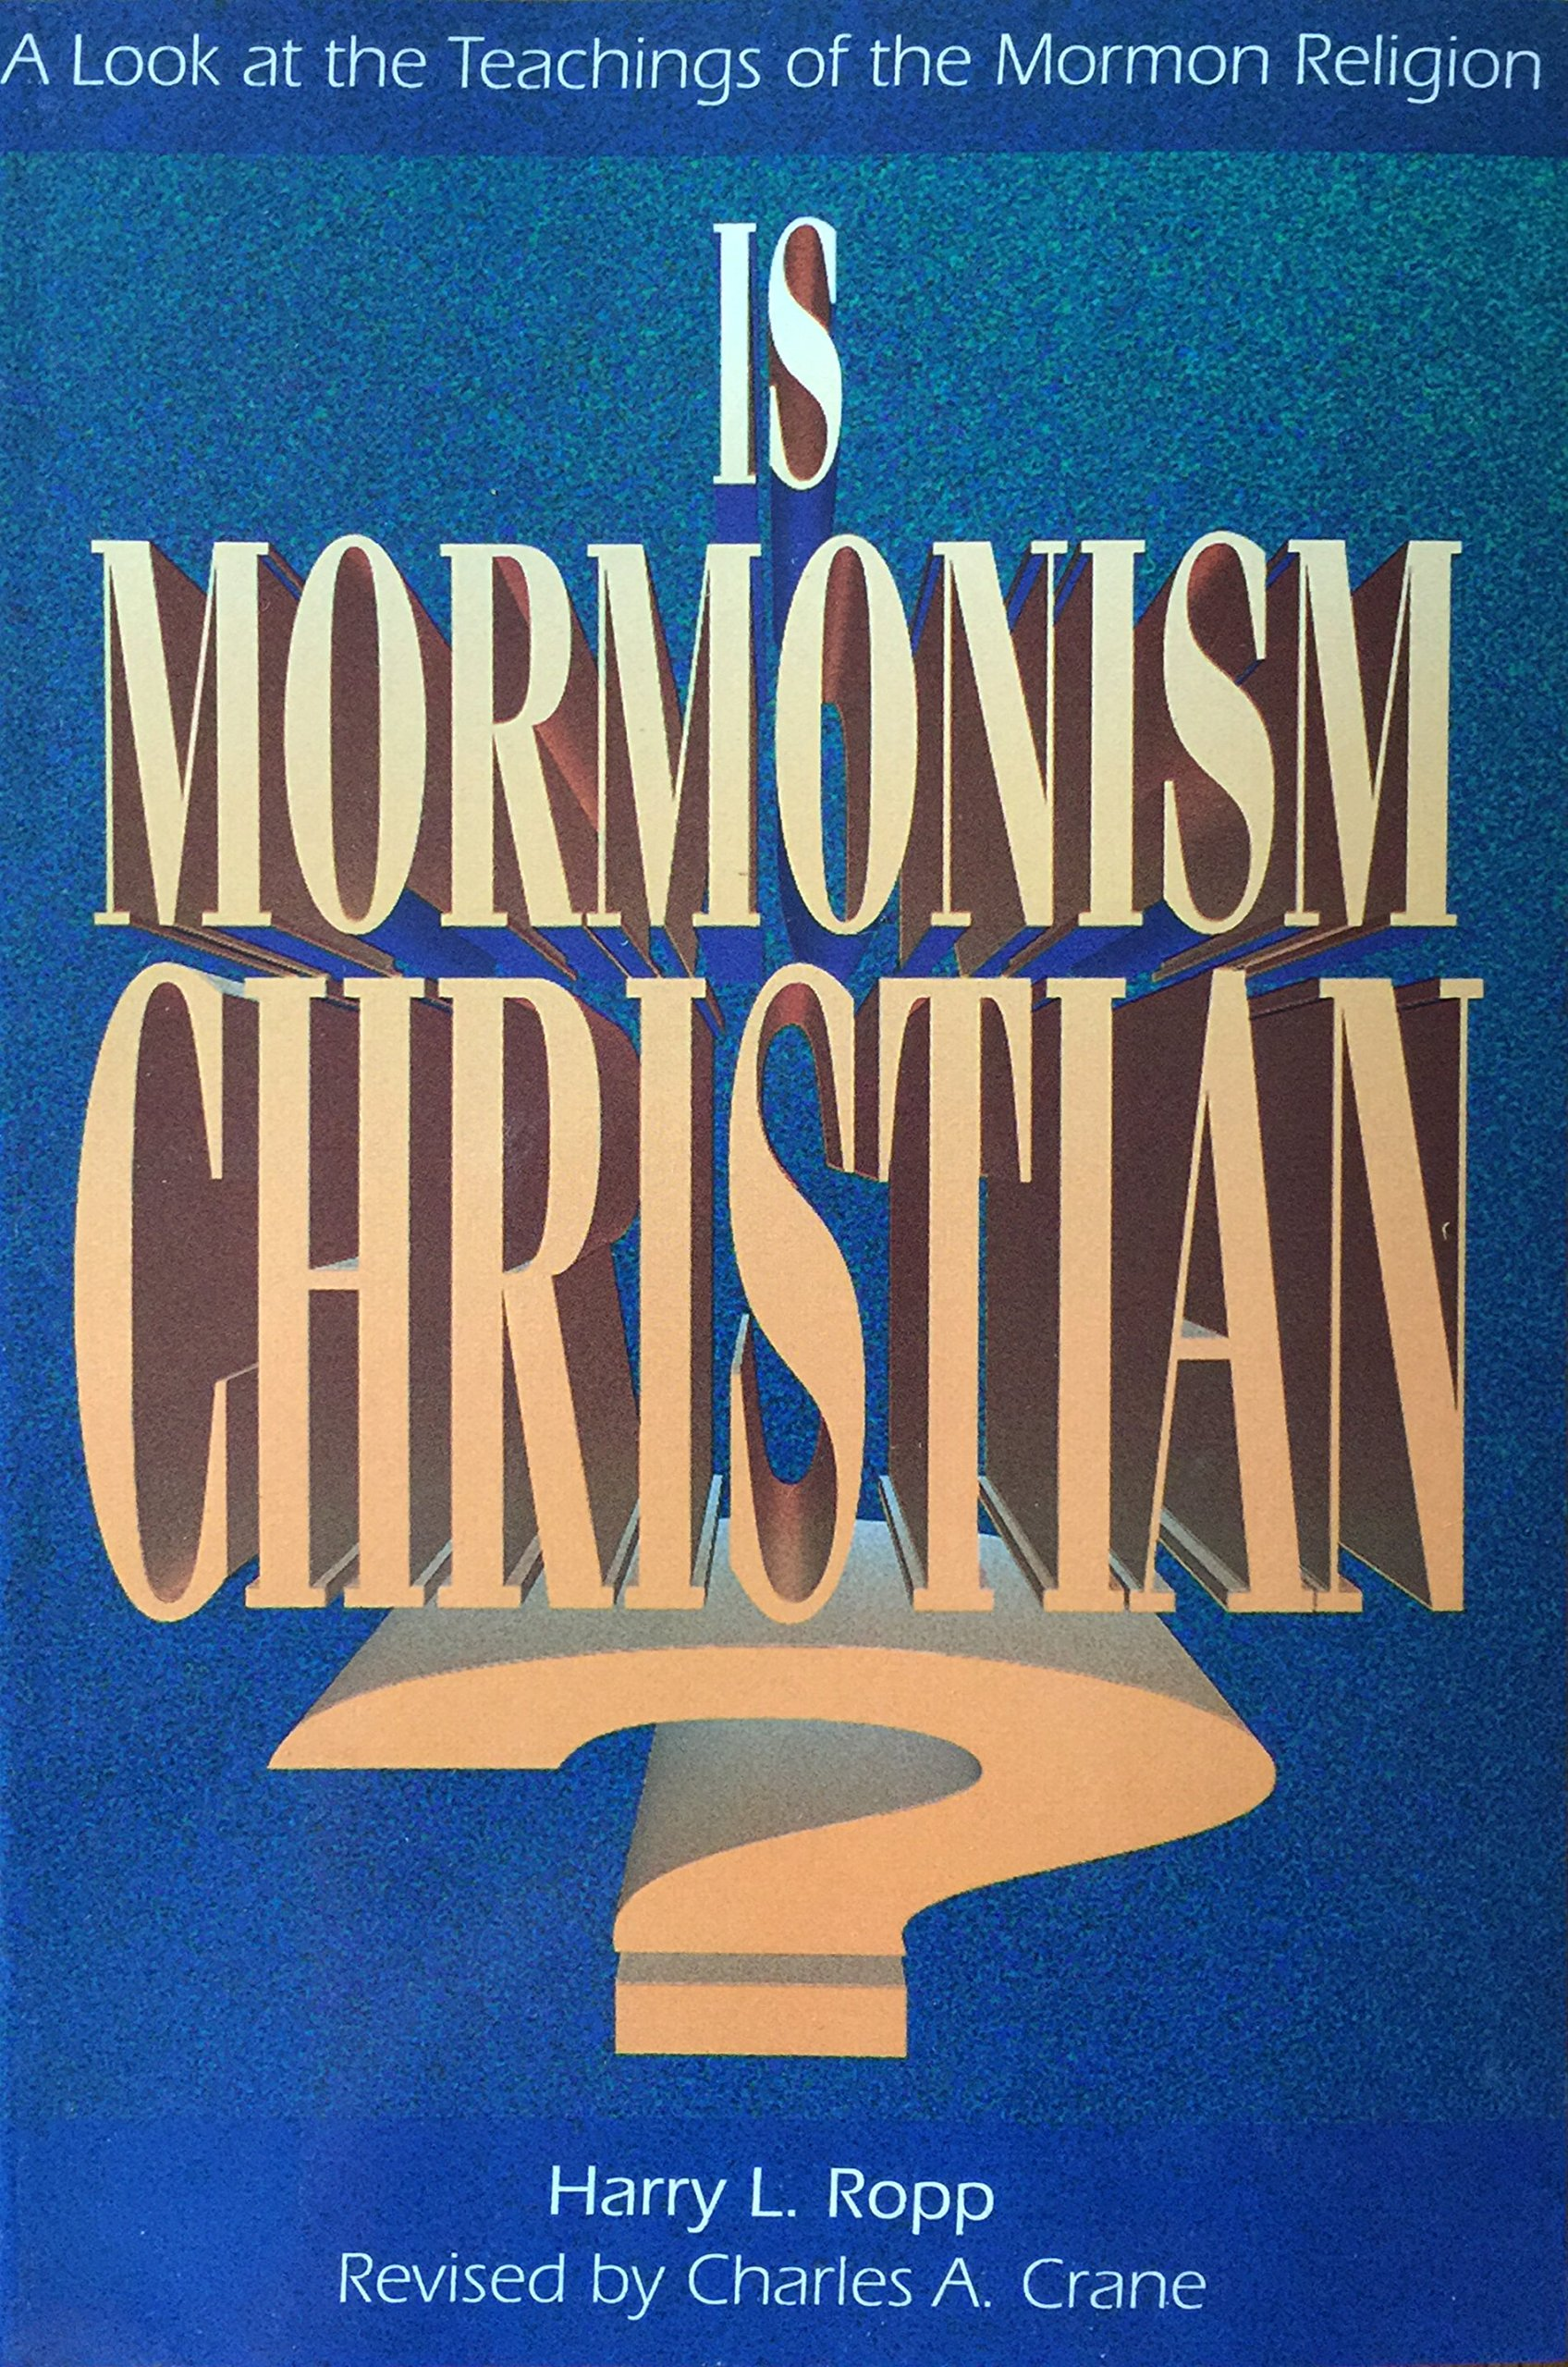 is mormon a christian religion